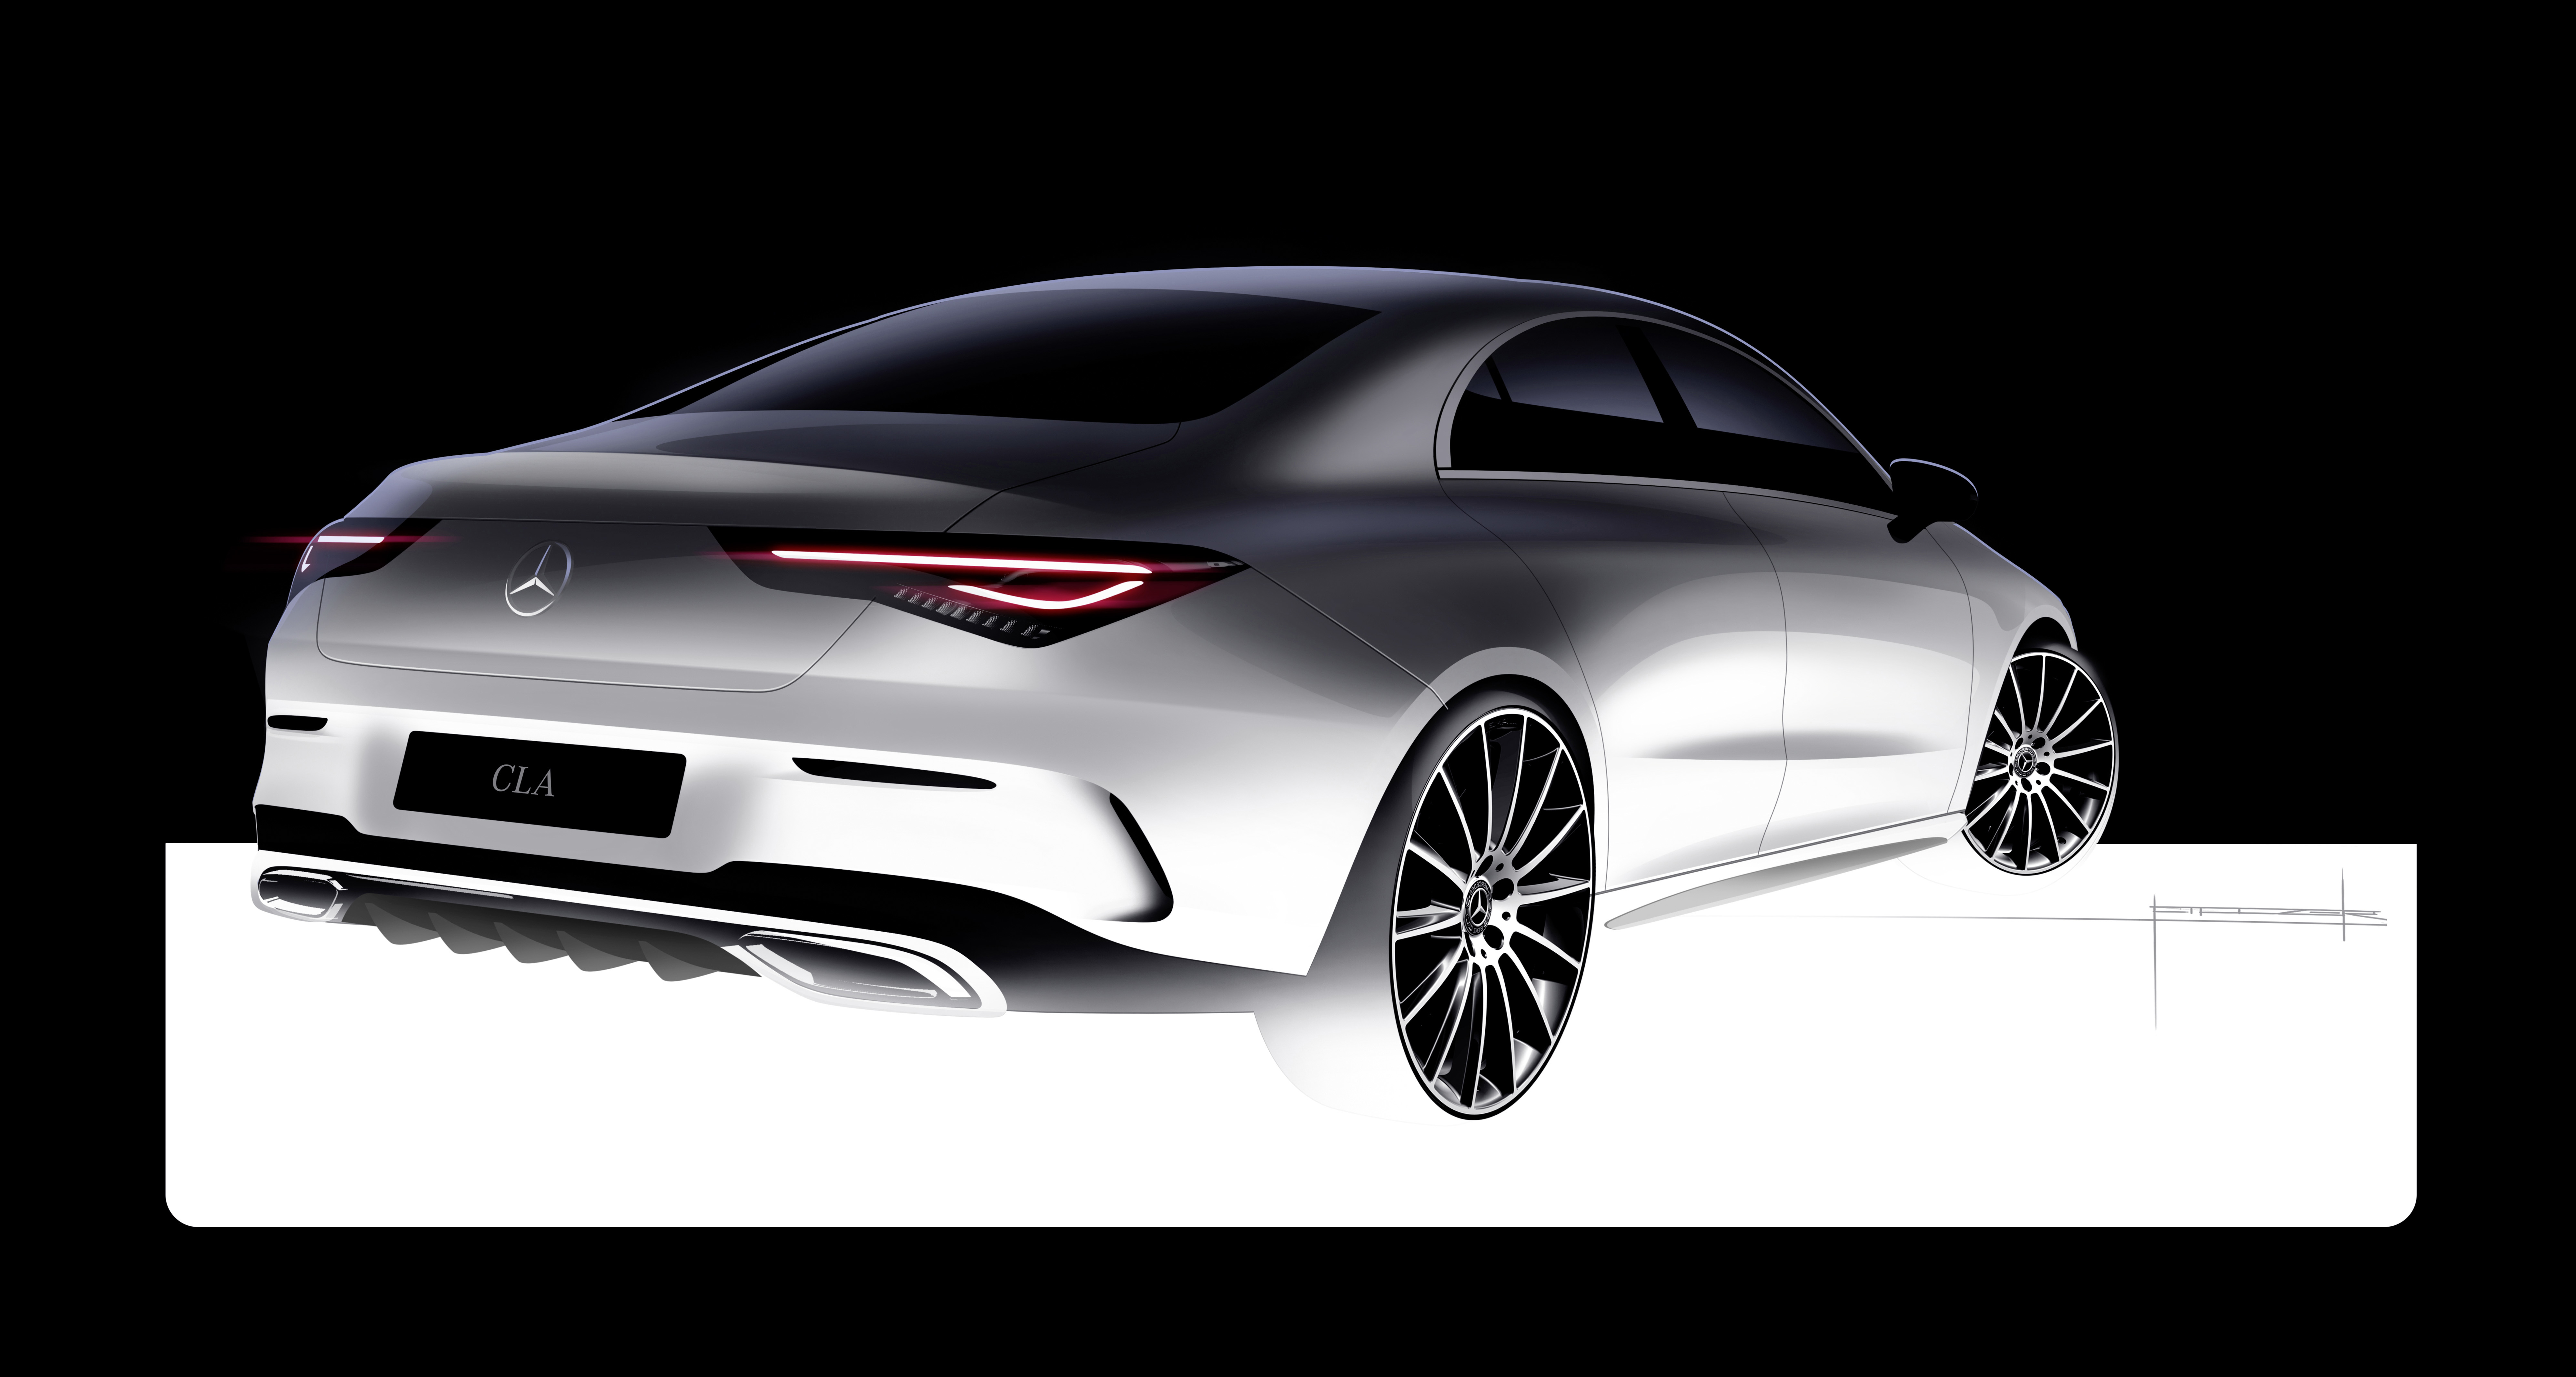 Mercedes-Benz CLA Coupe - 2019 - design sketch - rear side-face / profil arrière